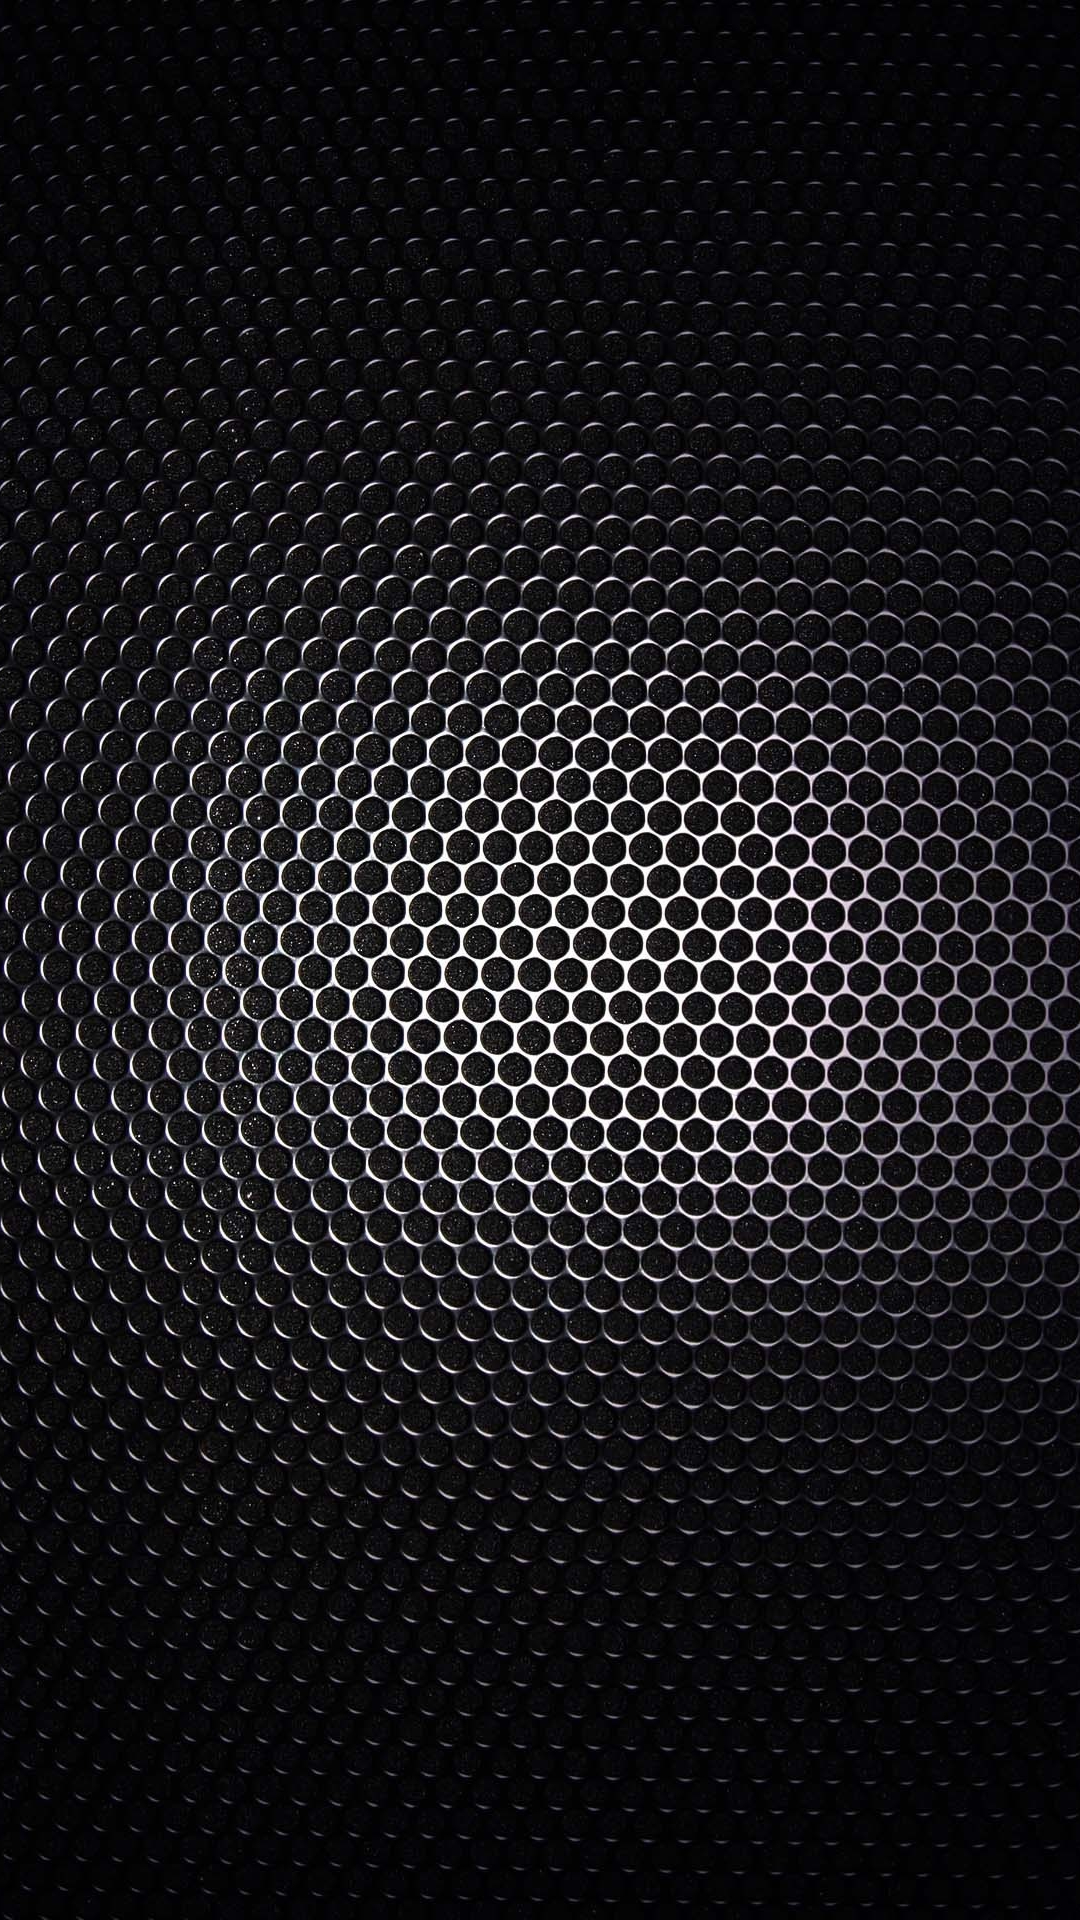 Wallpapers black gradient android wallpaper android - Black wallpaper for android download ...